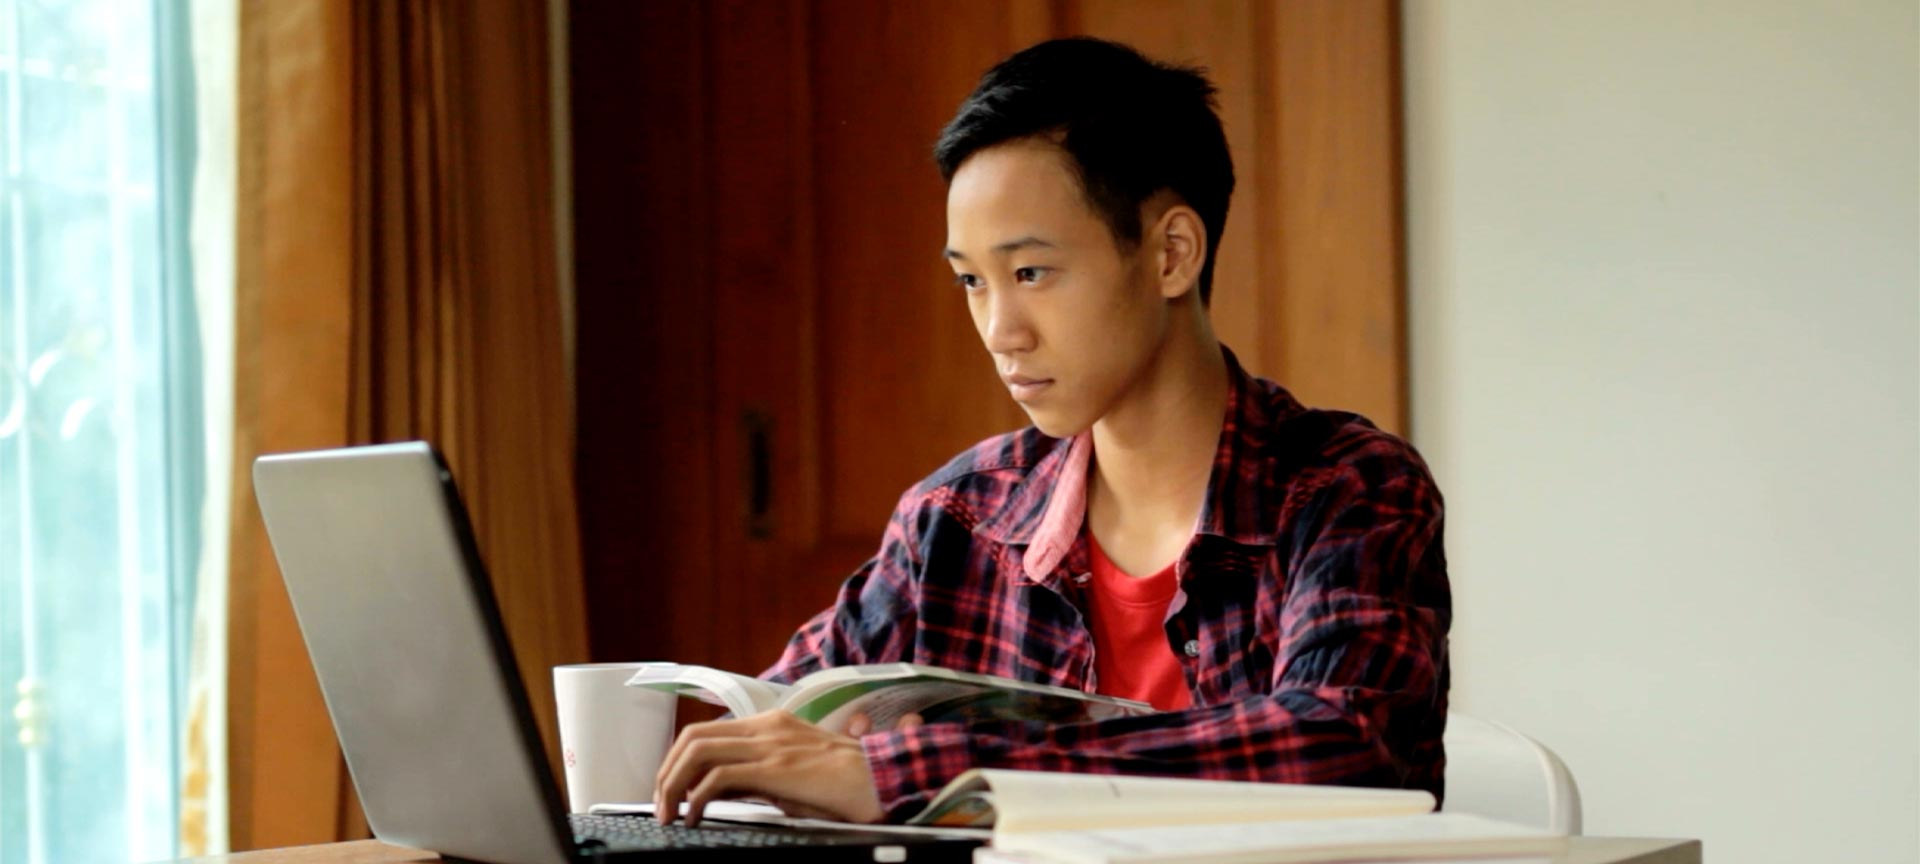 Male student using a laptop to study with book in hand